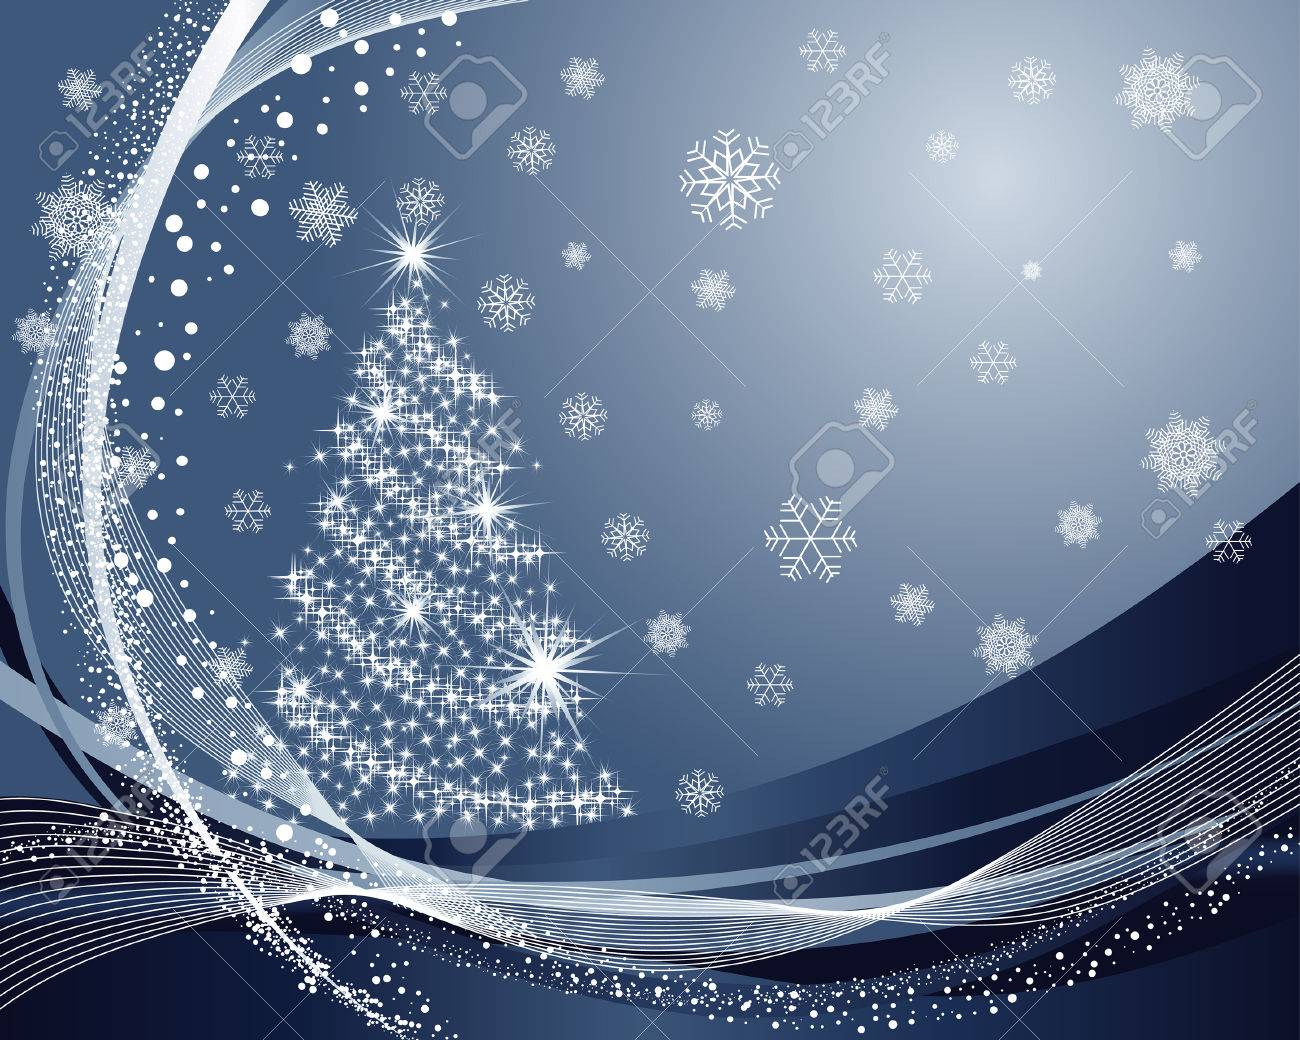 Beautiful vector christmas new year background for design use - Beautiful Vector Christmas New Year Background For Design Use Stock Vector 5935377